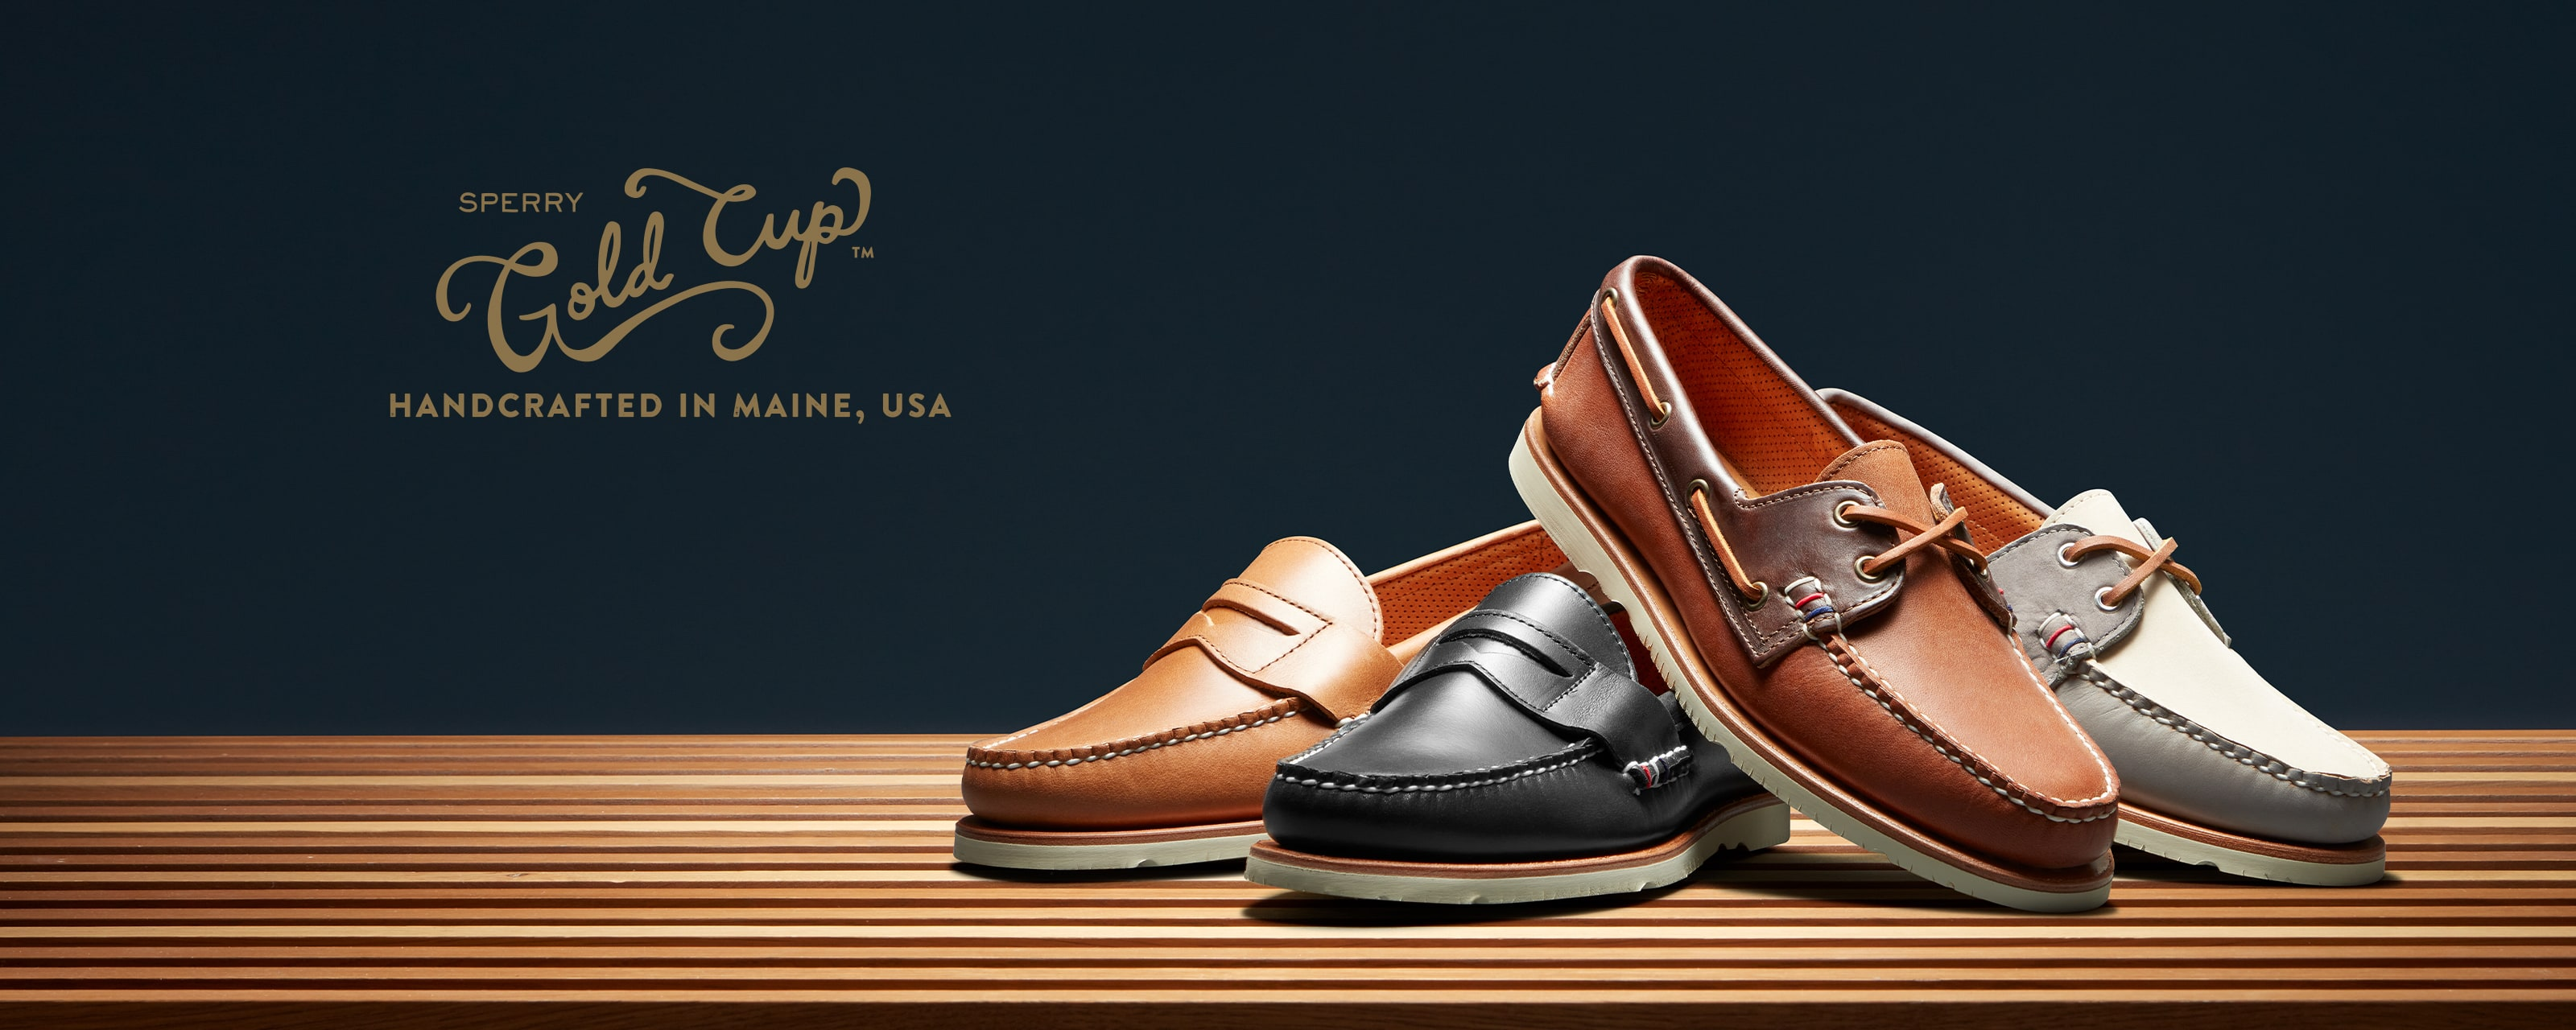 Sperry Gold Cup.  Handcrafted in Maine, USA.